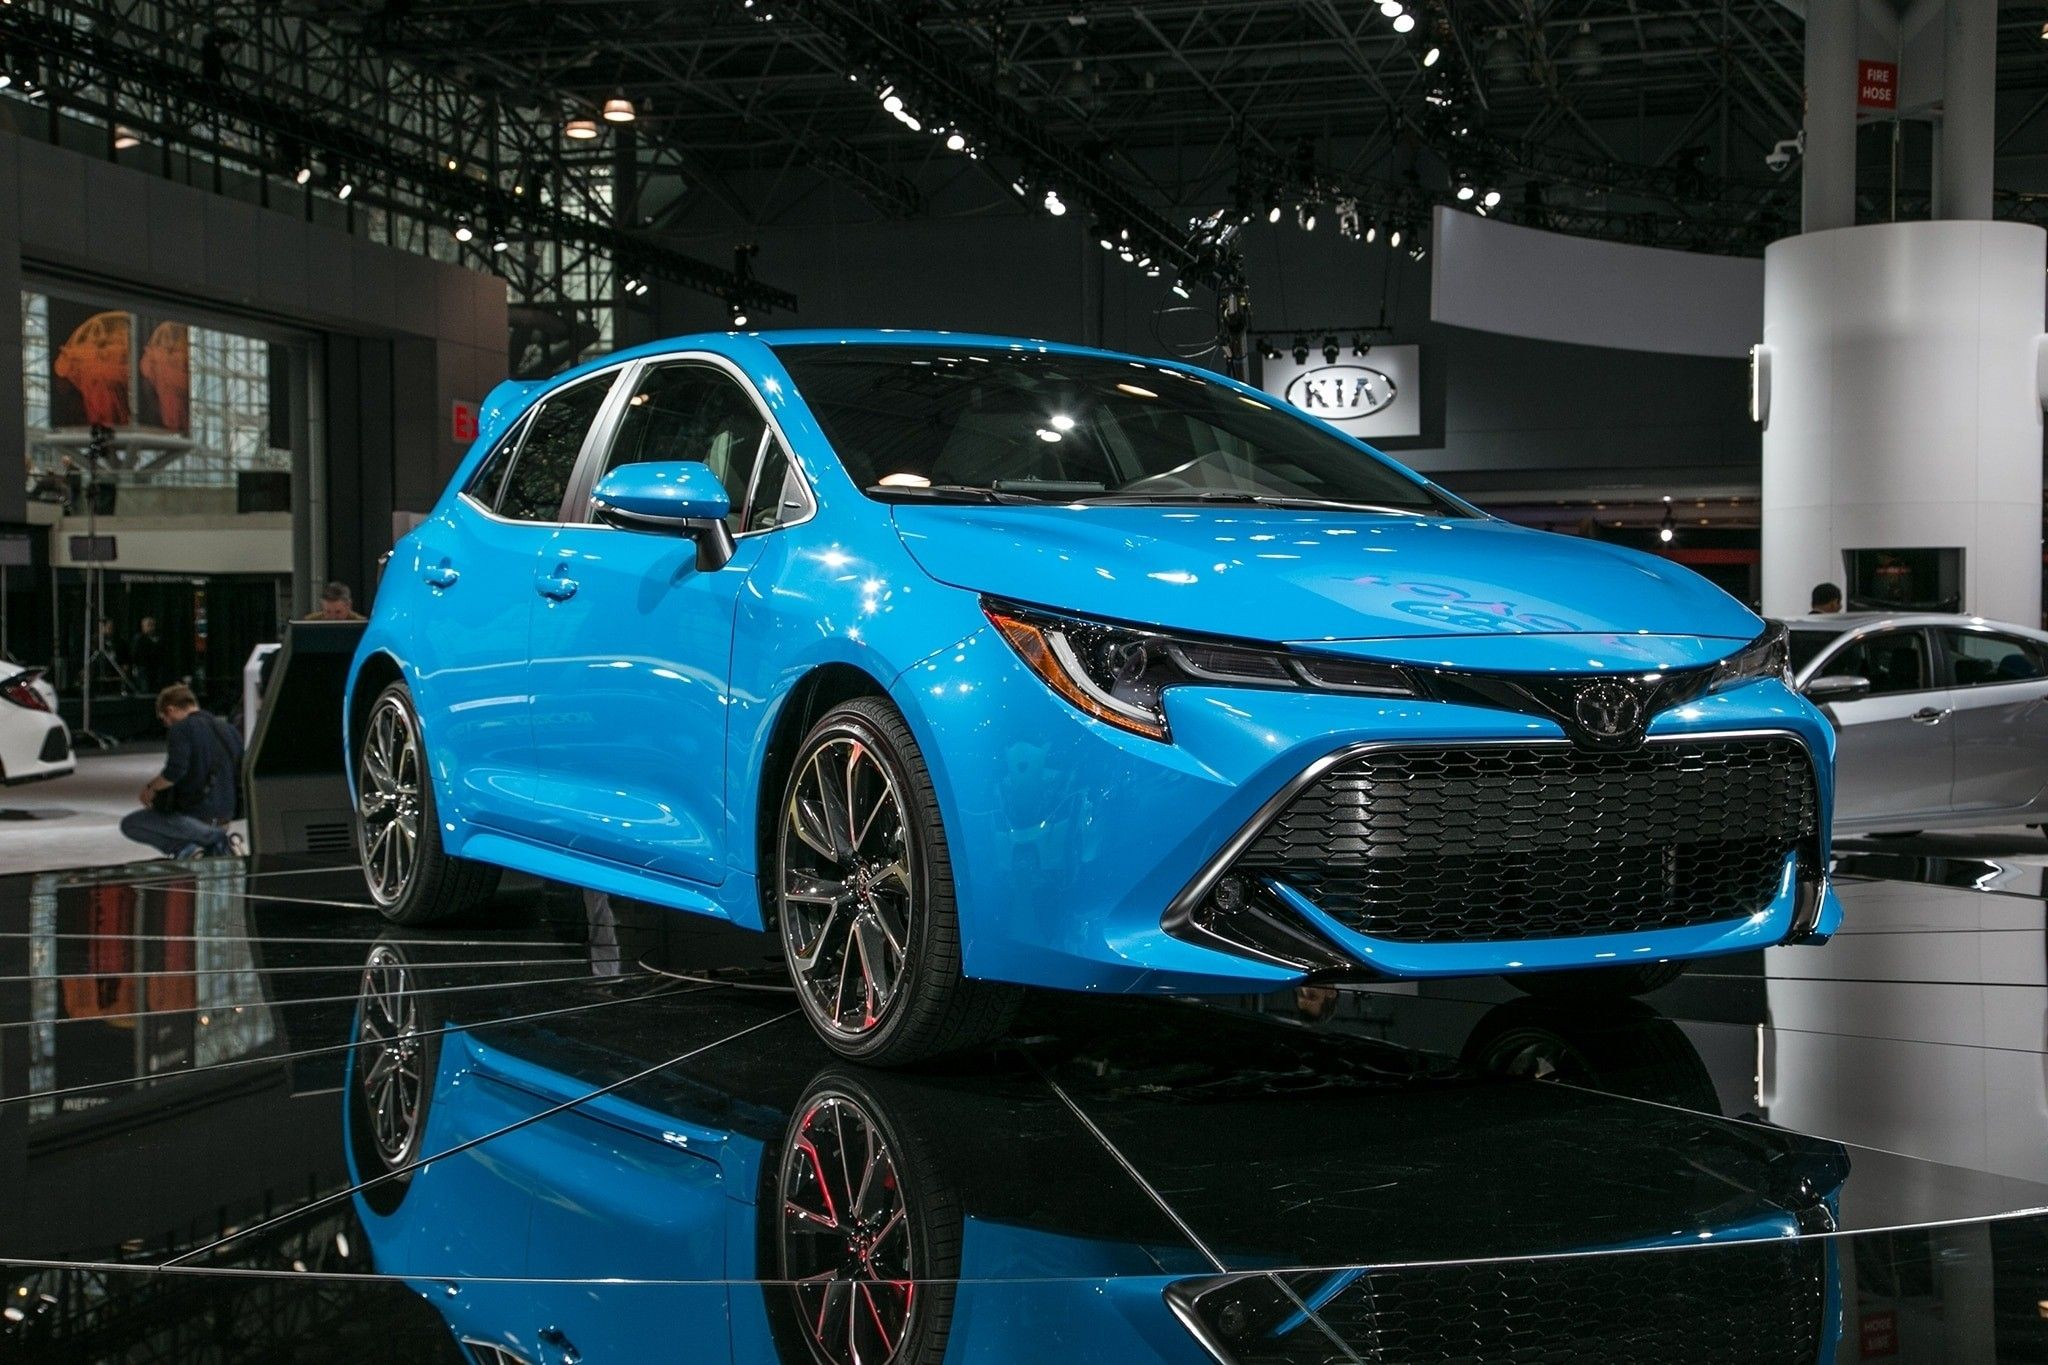 2019 Toyota Matrix Overview And Price In 2020 Toyota Corolla Hatchback Corolla Hatchback Toyota Corolla